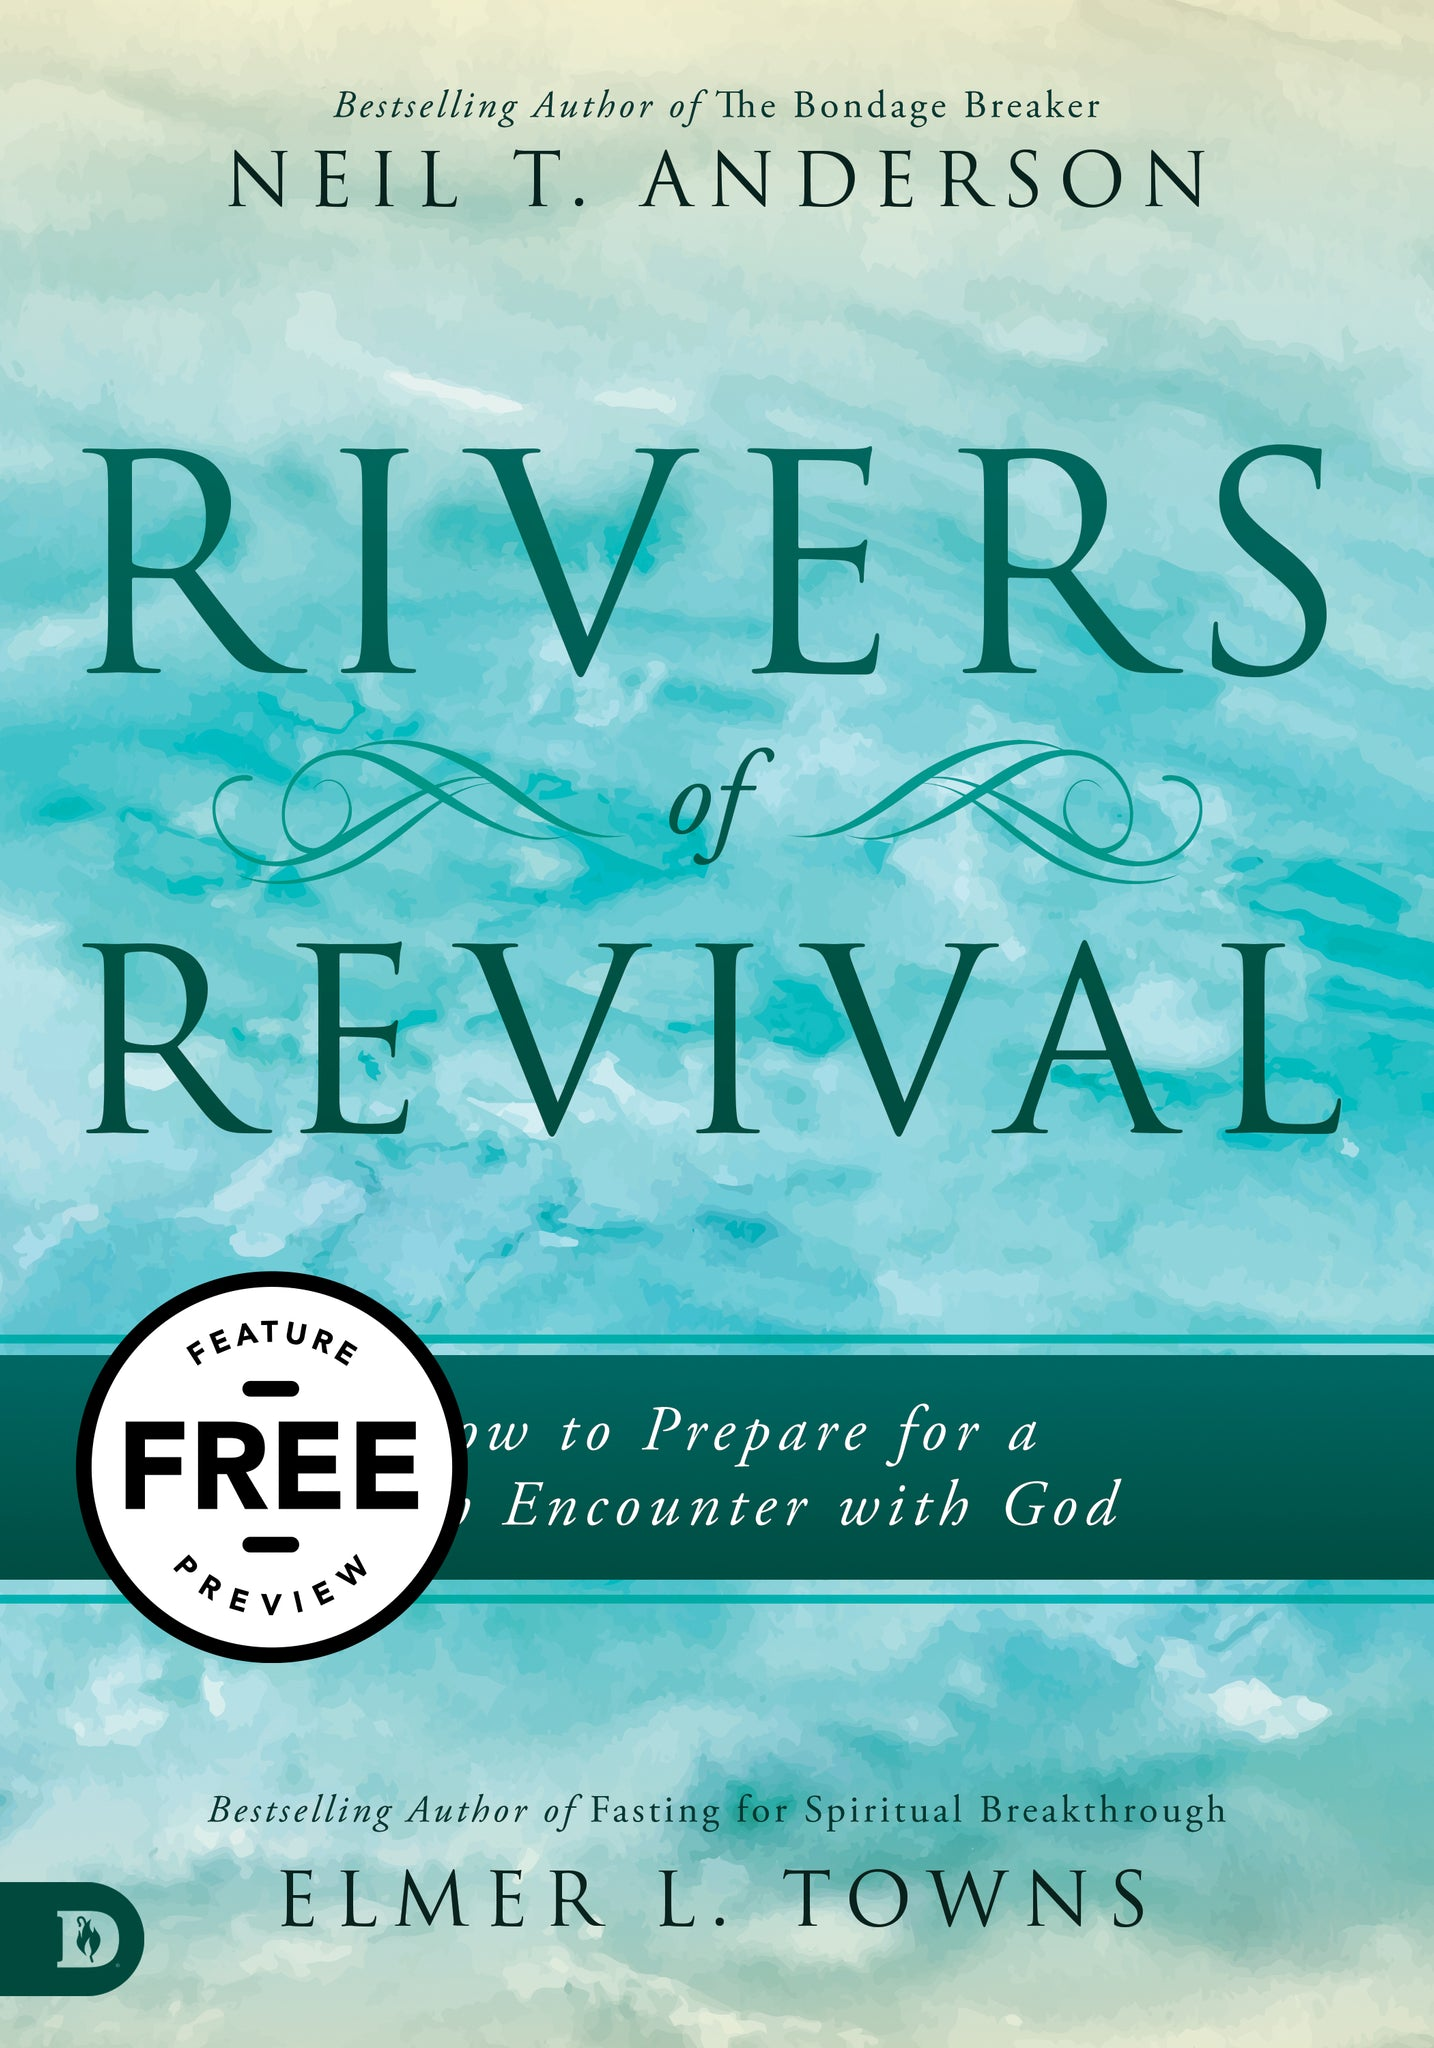 Rivers of Revival Free Feature Message (PDF Download)